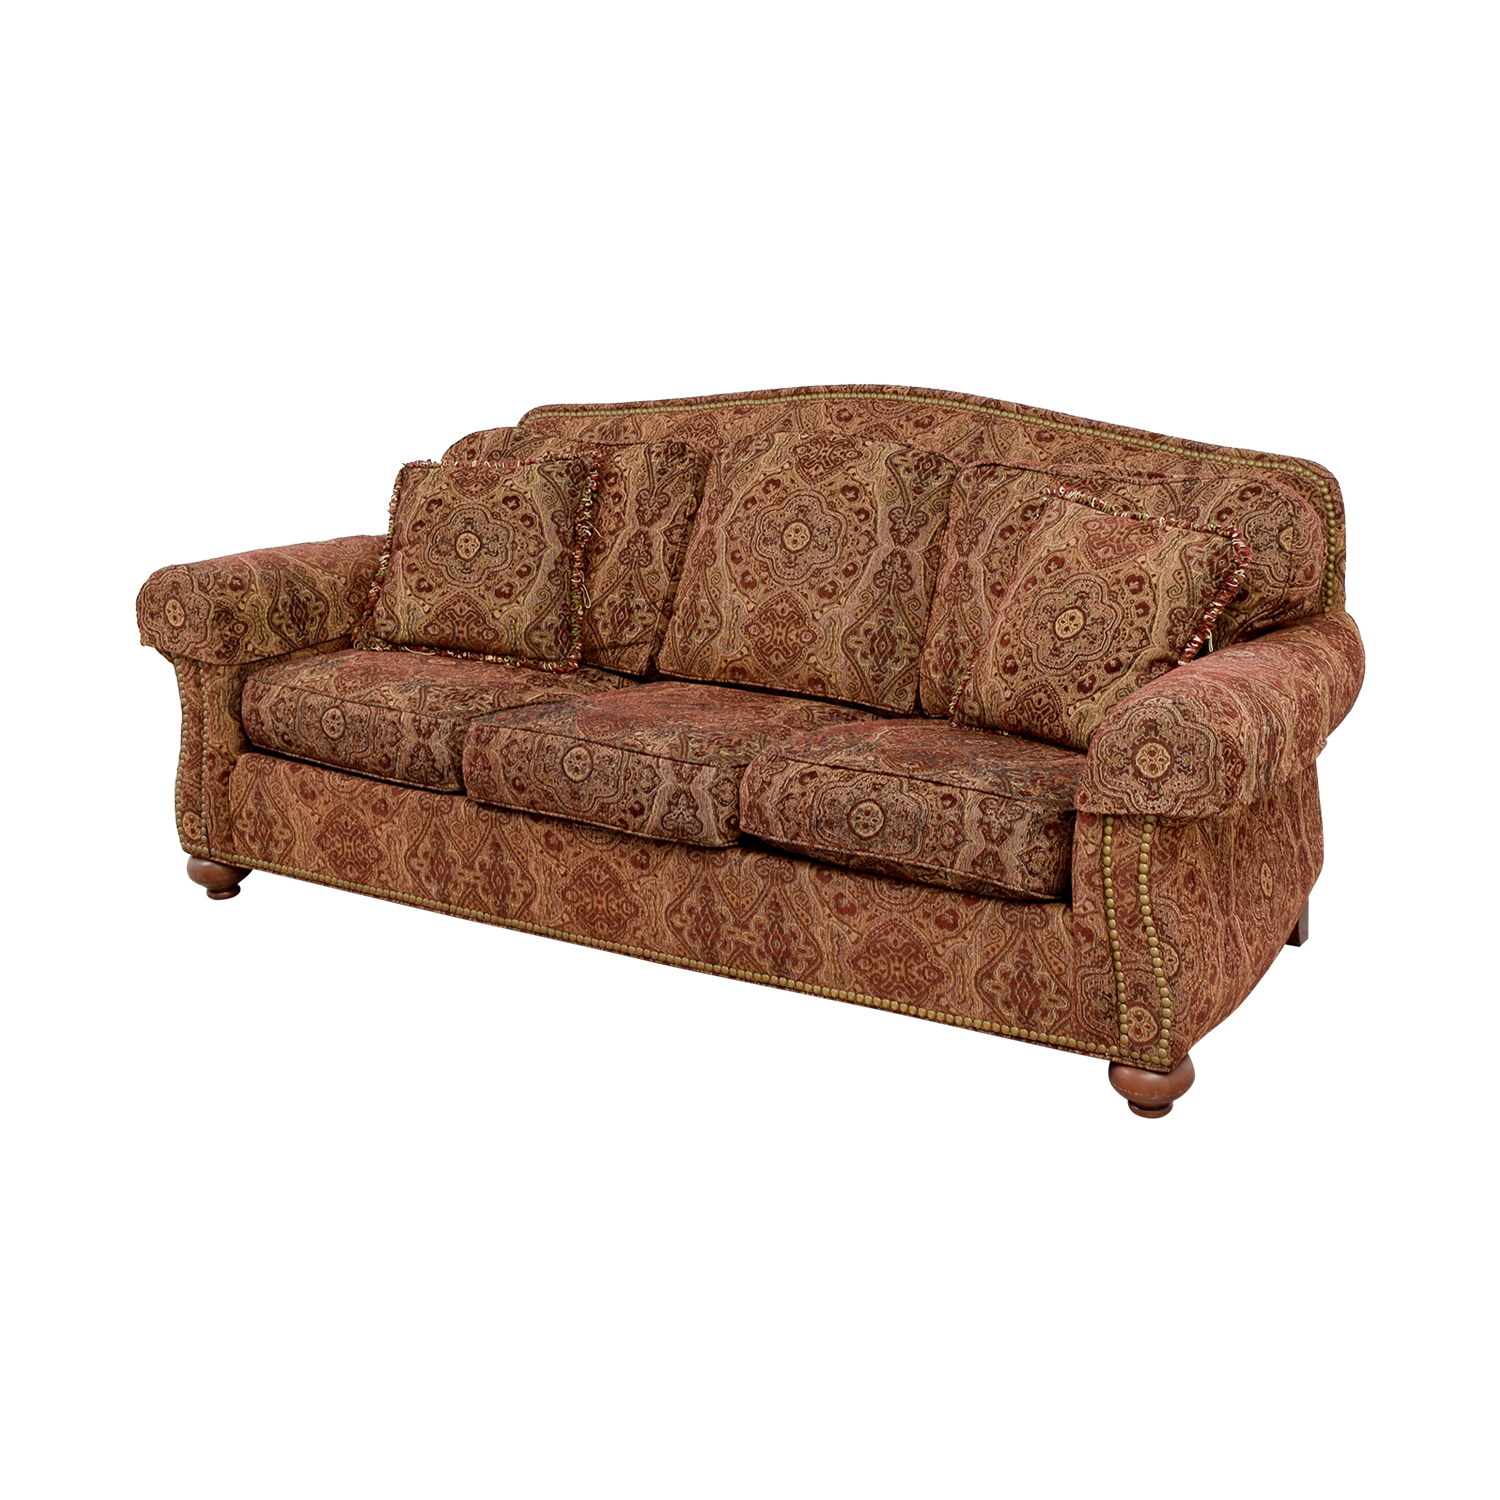 Paisley Sofa Simmons Paisley Sofa Emory Brownstone Thesofa